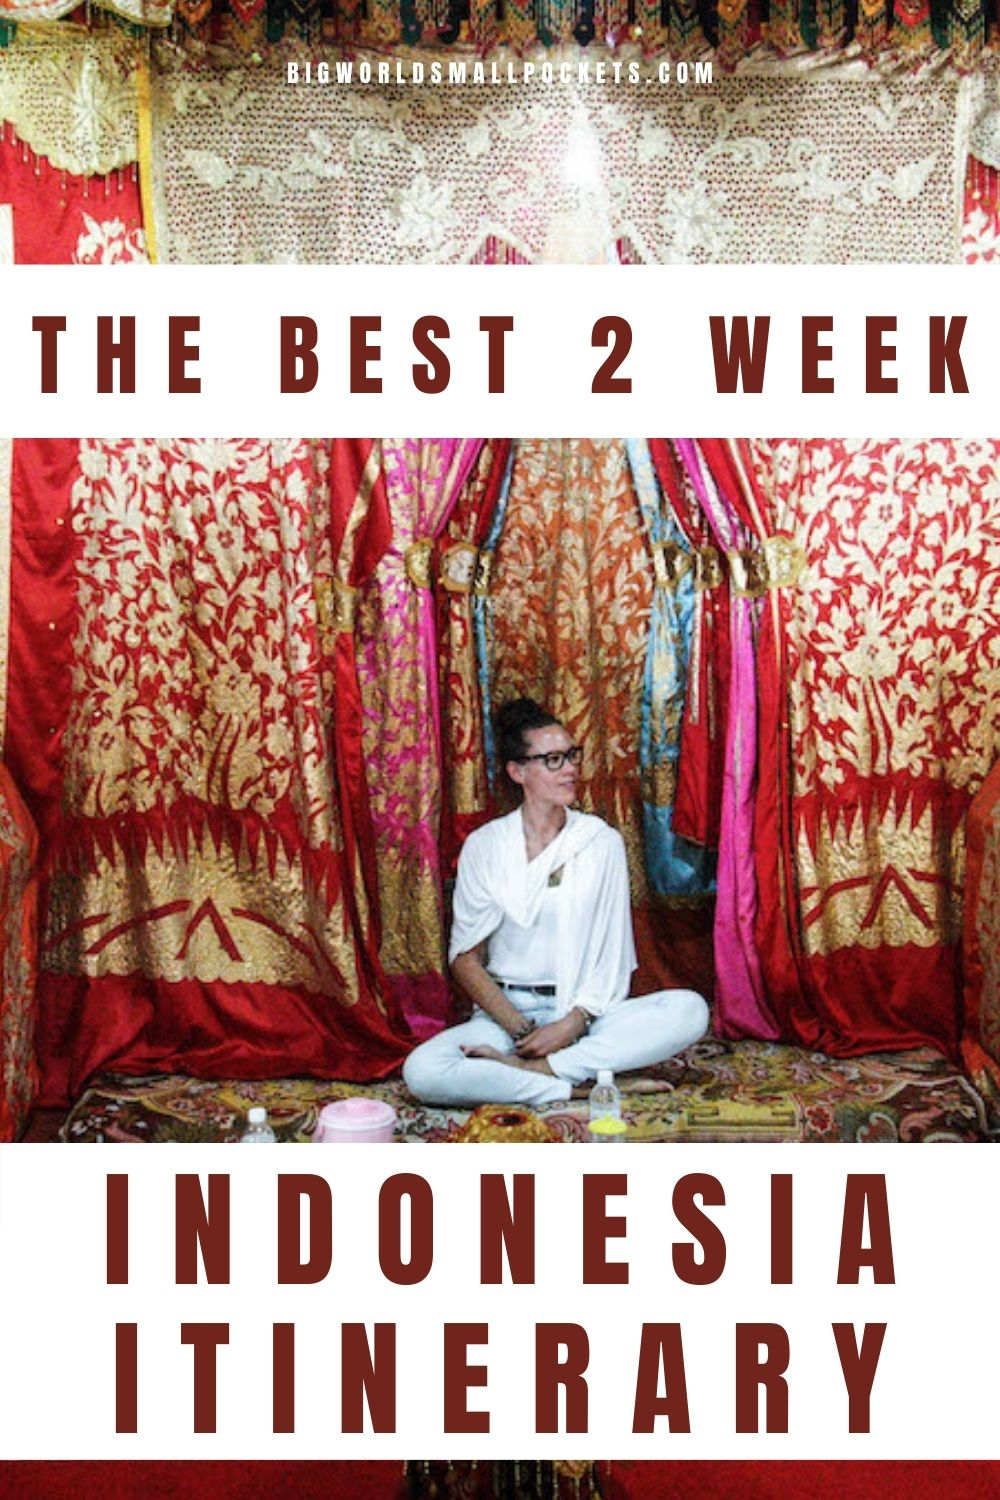 Best 2 Week Itinerary for Indonesia